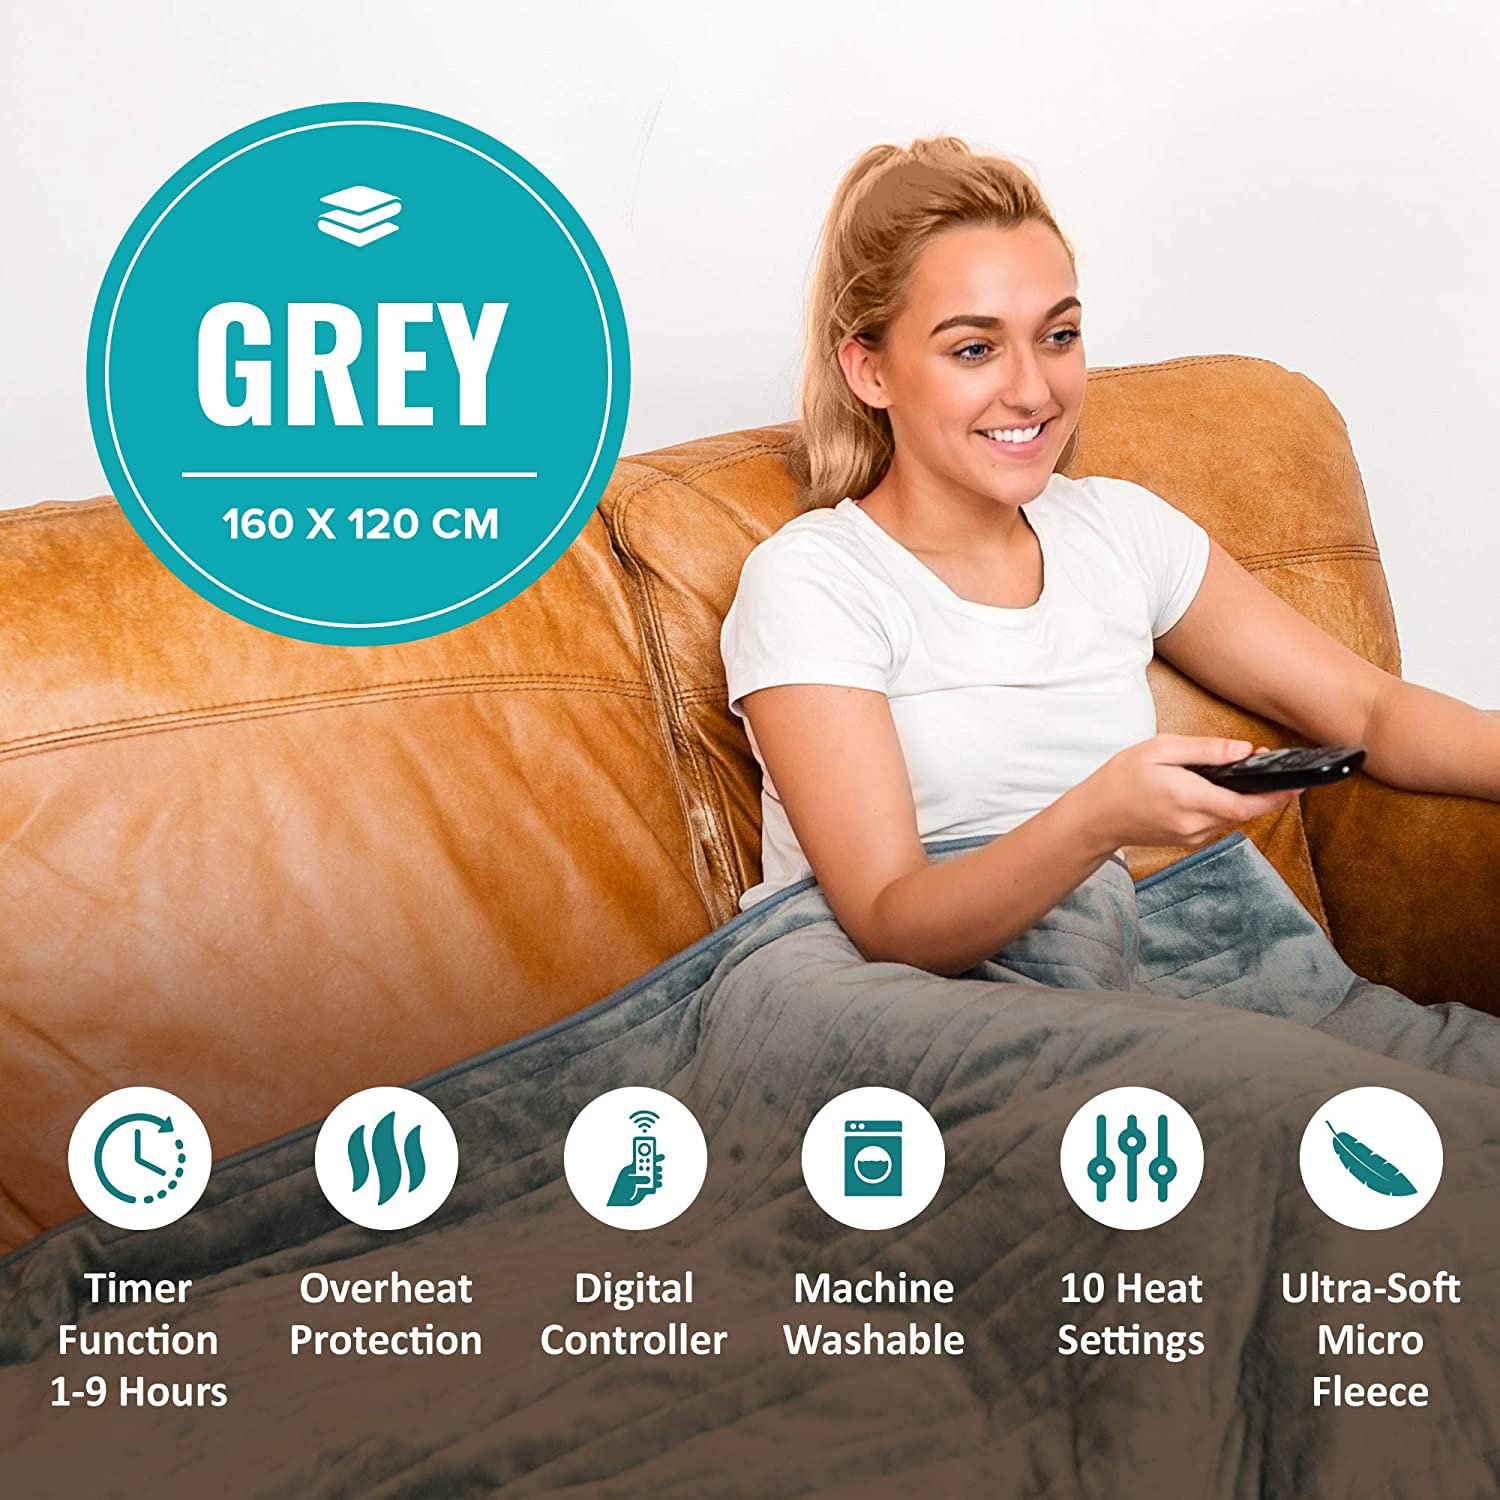 Easy to Use Detachable Digital Control Machine Washable Grey 160x120cm LIVIVO Heated Electric Over Blanket Ultra Soft Micro Fleece Throw with 10 Heat Settings and Timer Function